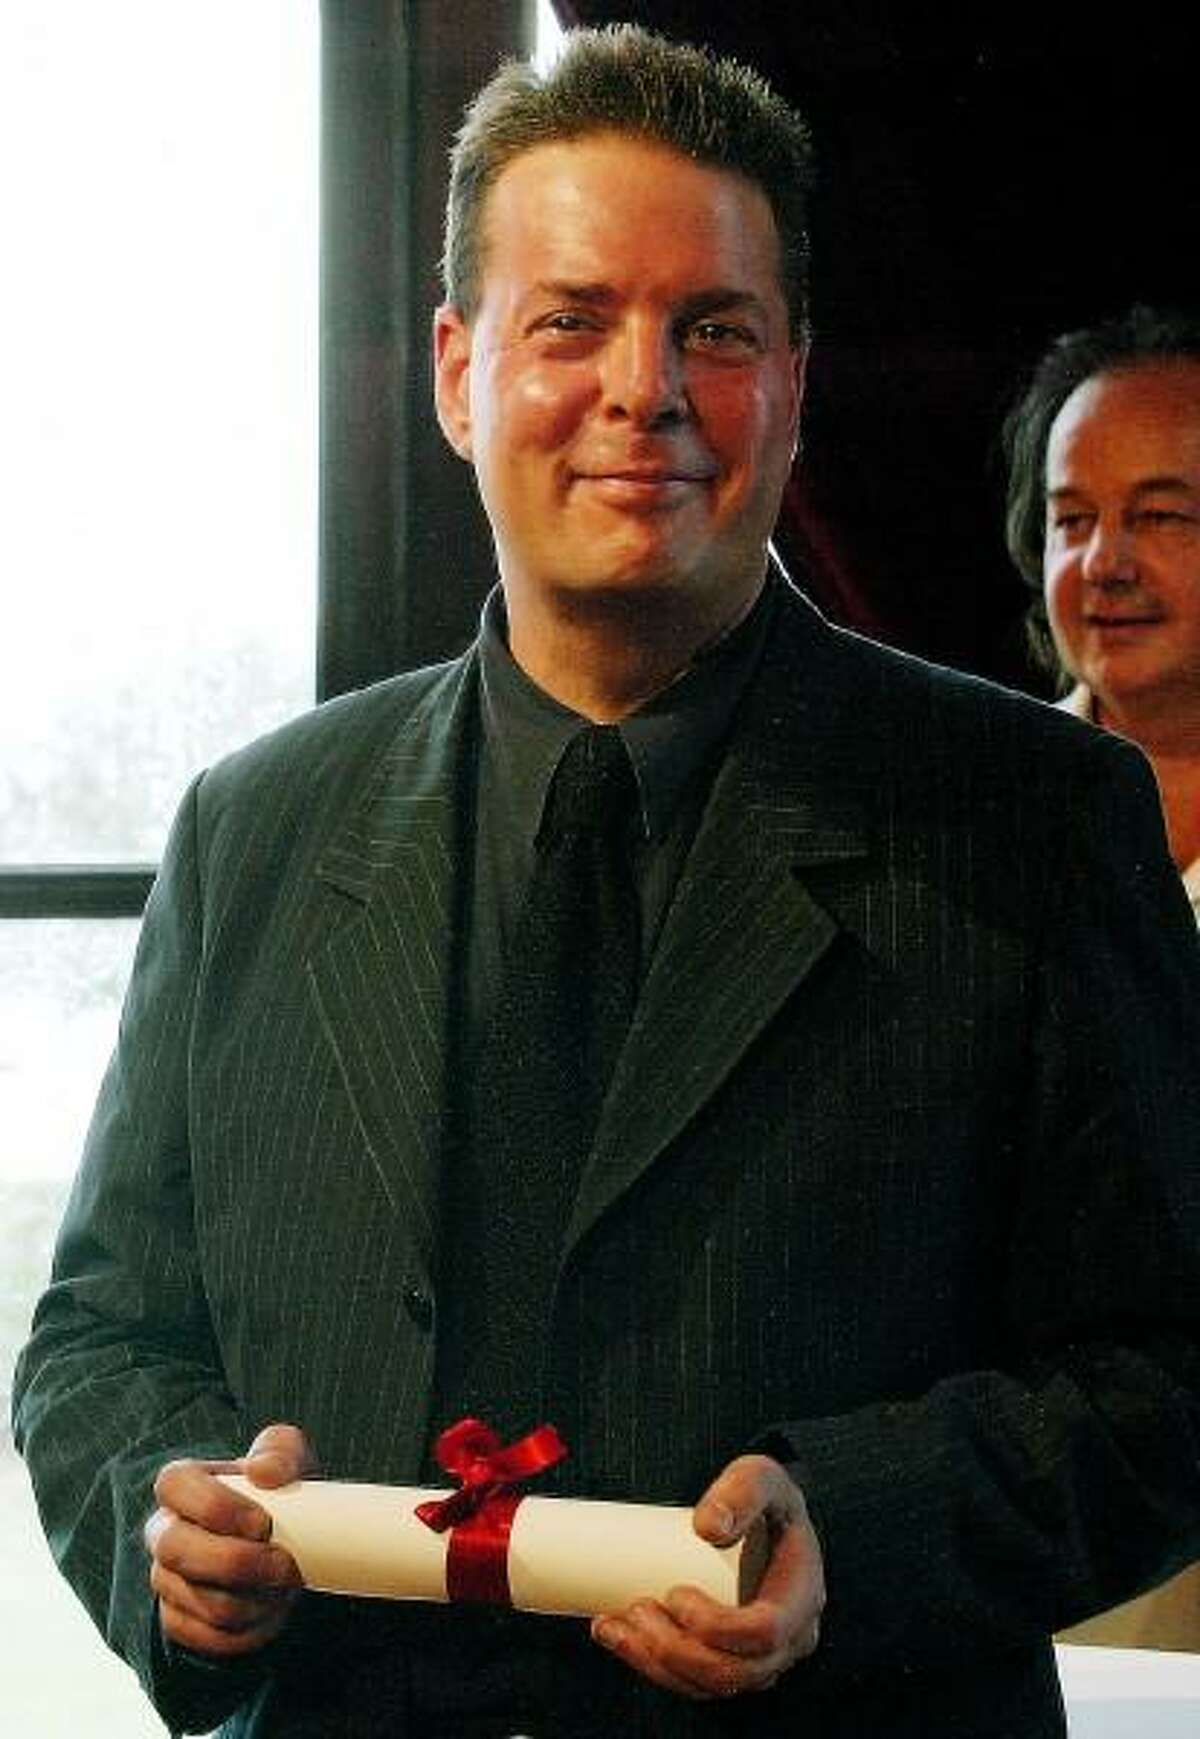 """Franck Prevel - AP file photo: American writer Douglas Kennedy was presented with the Literary Award of the American Film Festival of Deauville for his book """"Losing it"""" in Deauville, Normandy, in 2003. The award is presented to a French or American writer who talks about America with humor, lightness or gravity."""